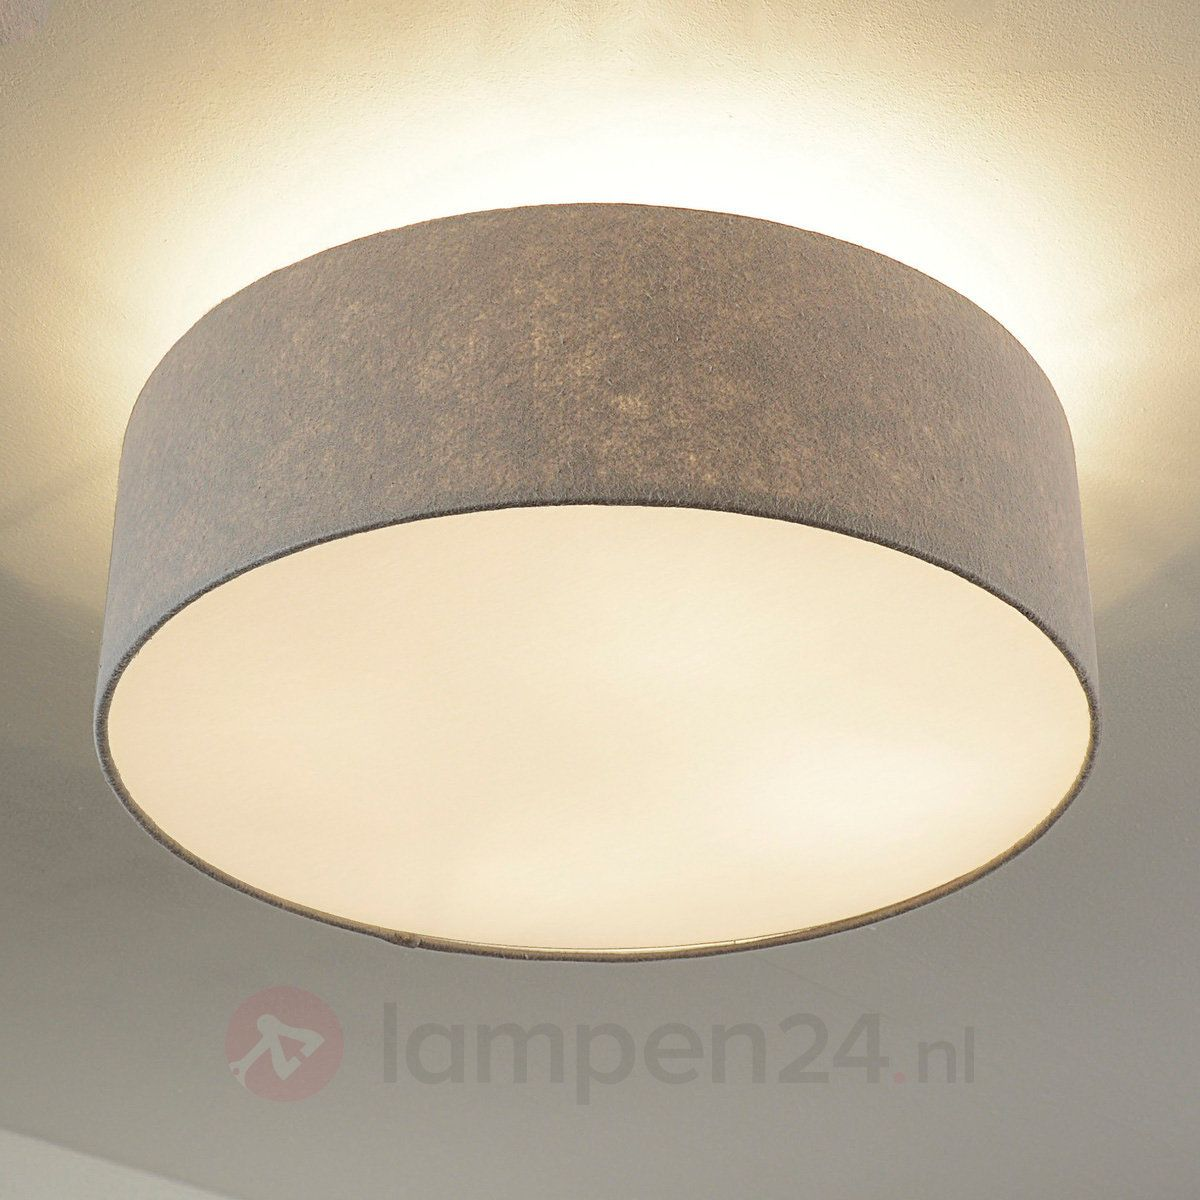 Amazon Deckenlampe Schlafzimmer #20: Deckenleuchte 71764 Modern Stoff Taupe Rund | Dream Home | Pinterest |  Taupe, Modern And Room